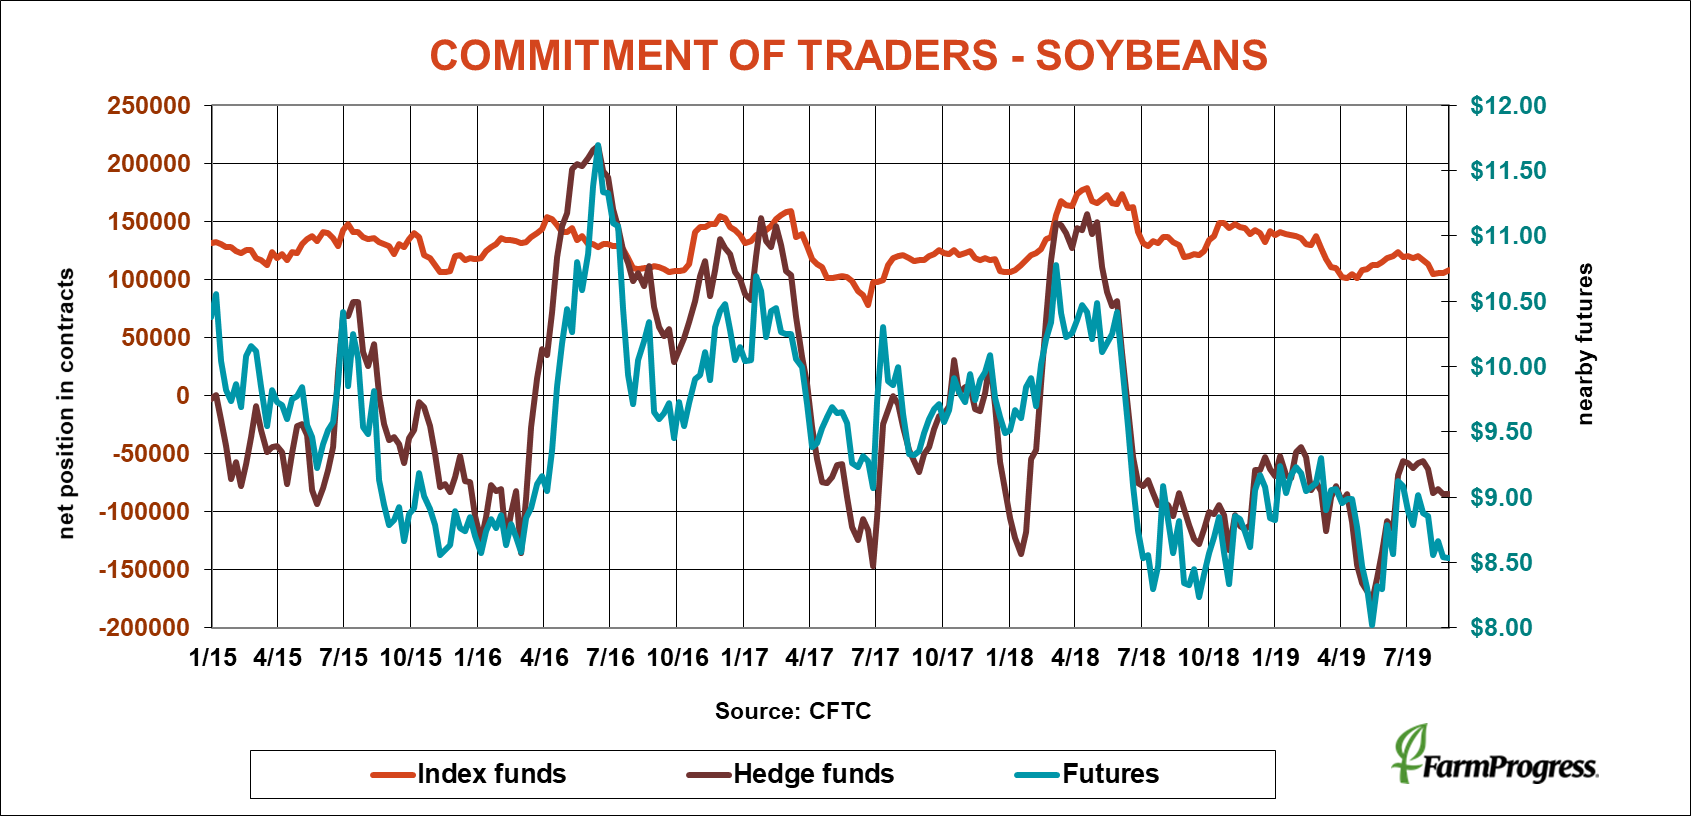 commitment-traders-soybeans-083019.png